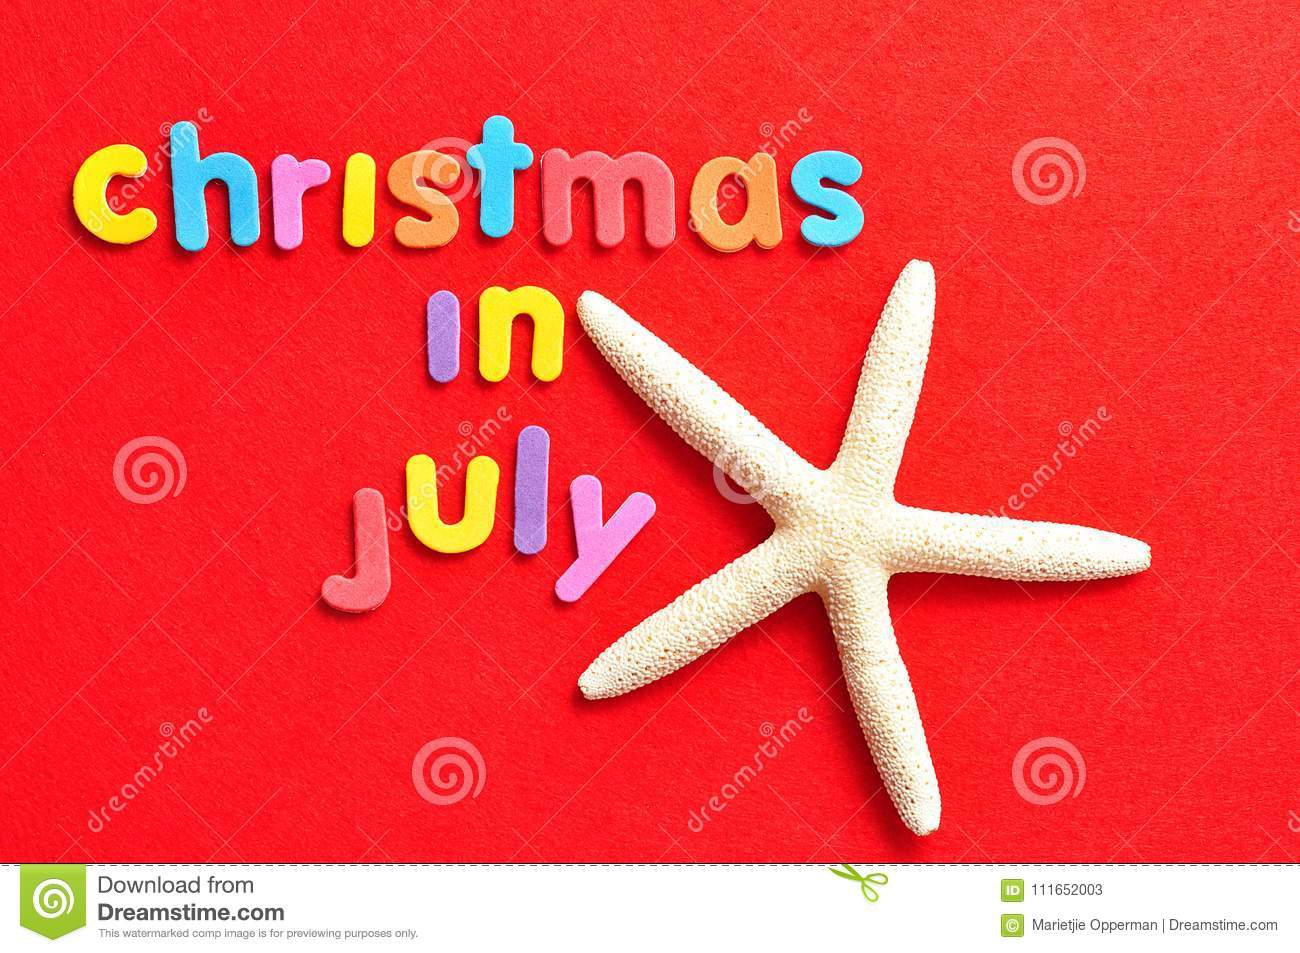 Christmas In July Background Images.The Words Christmas In July On A Red Background With A